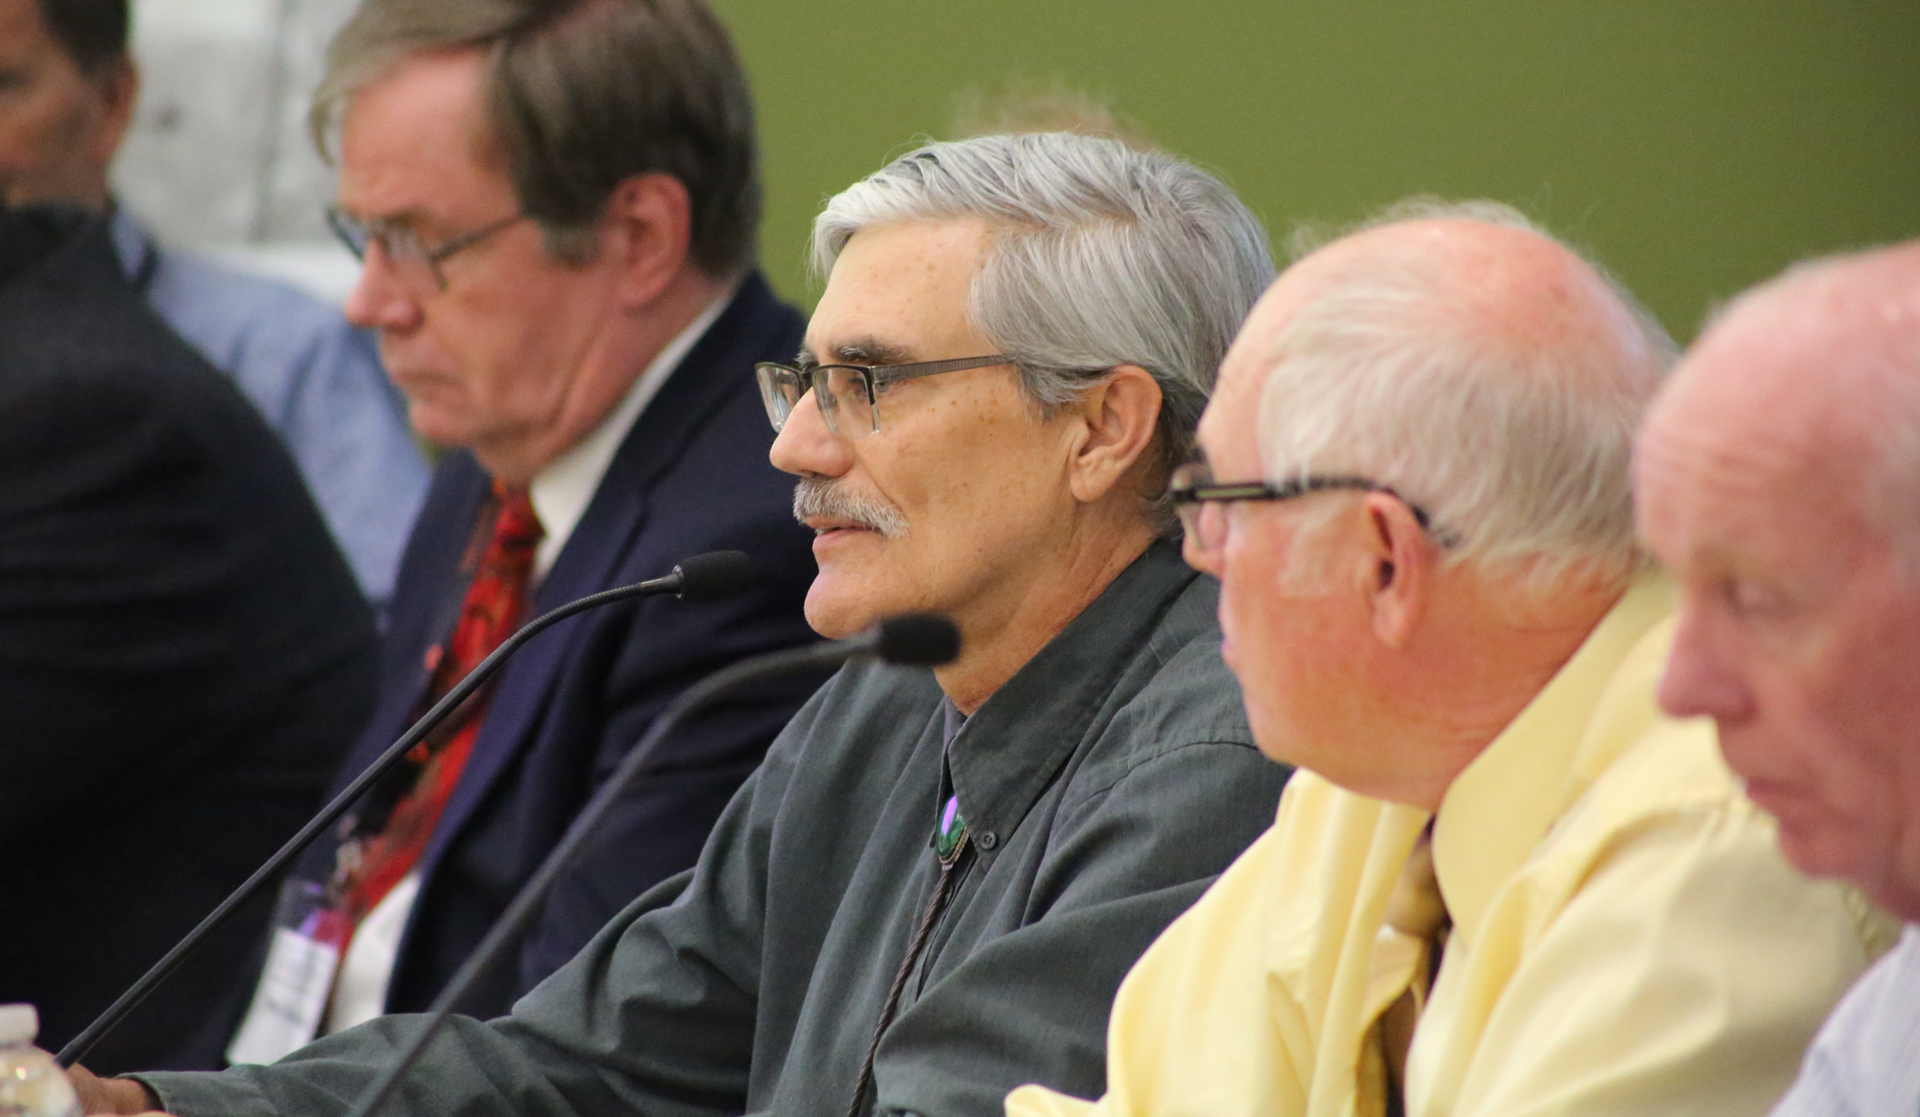 Board Denies EnergySolutions Request for Exemption for